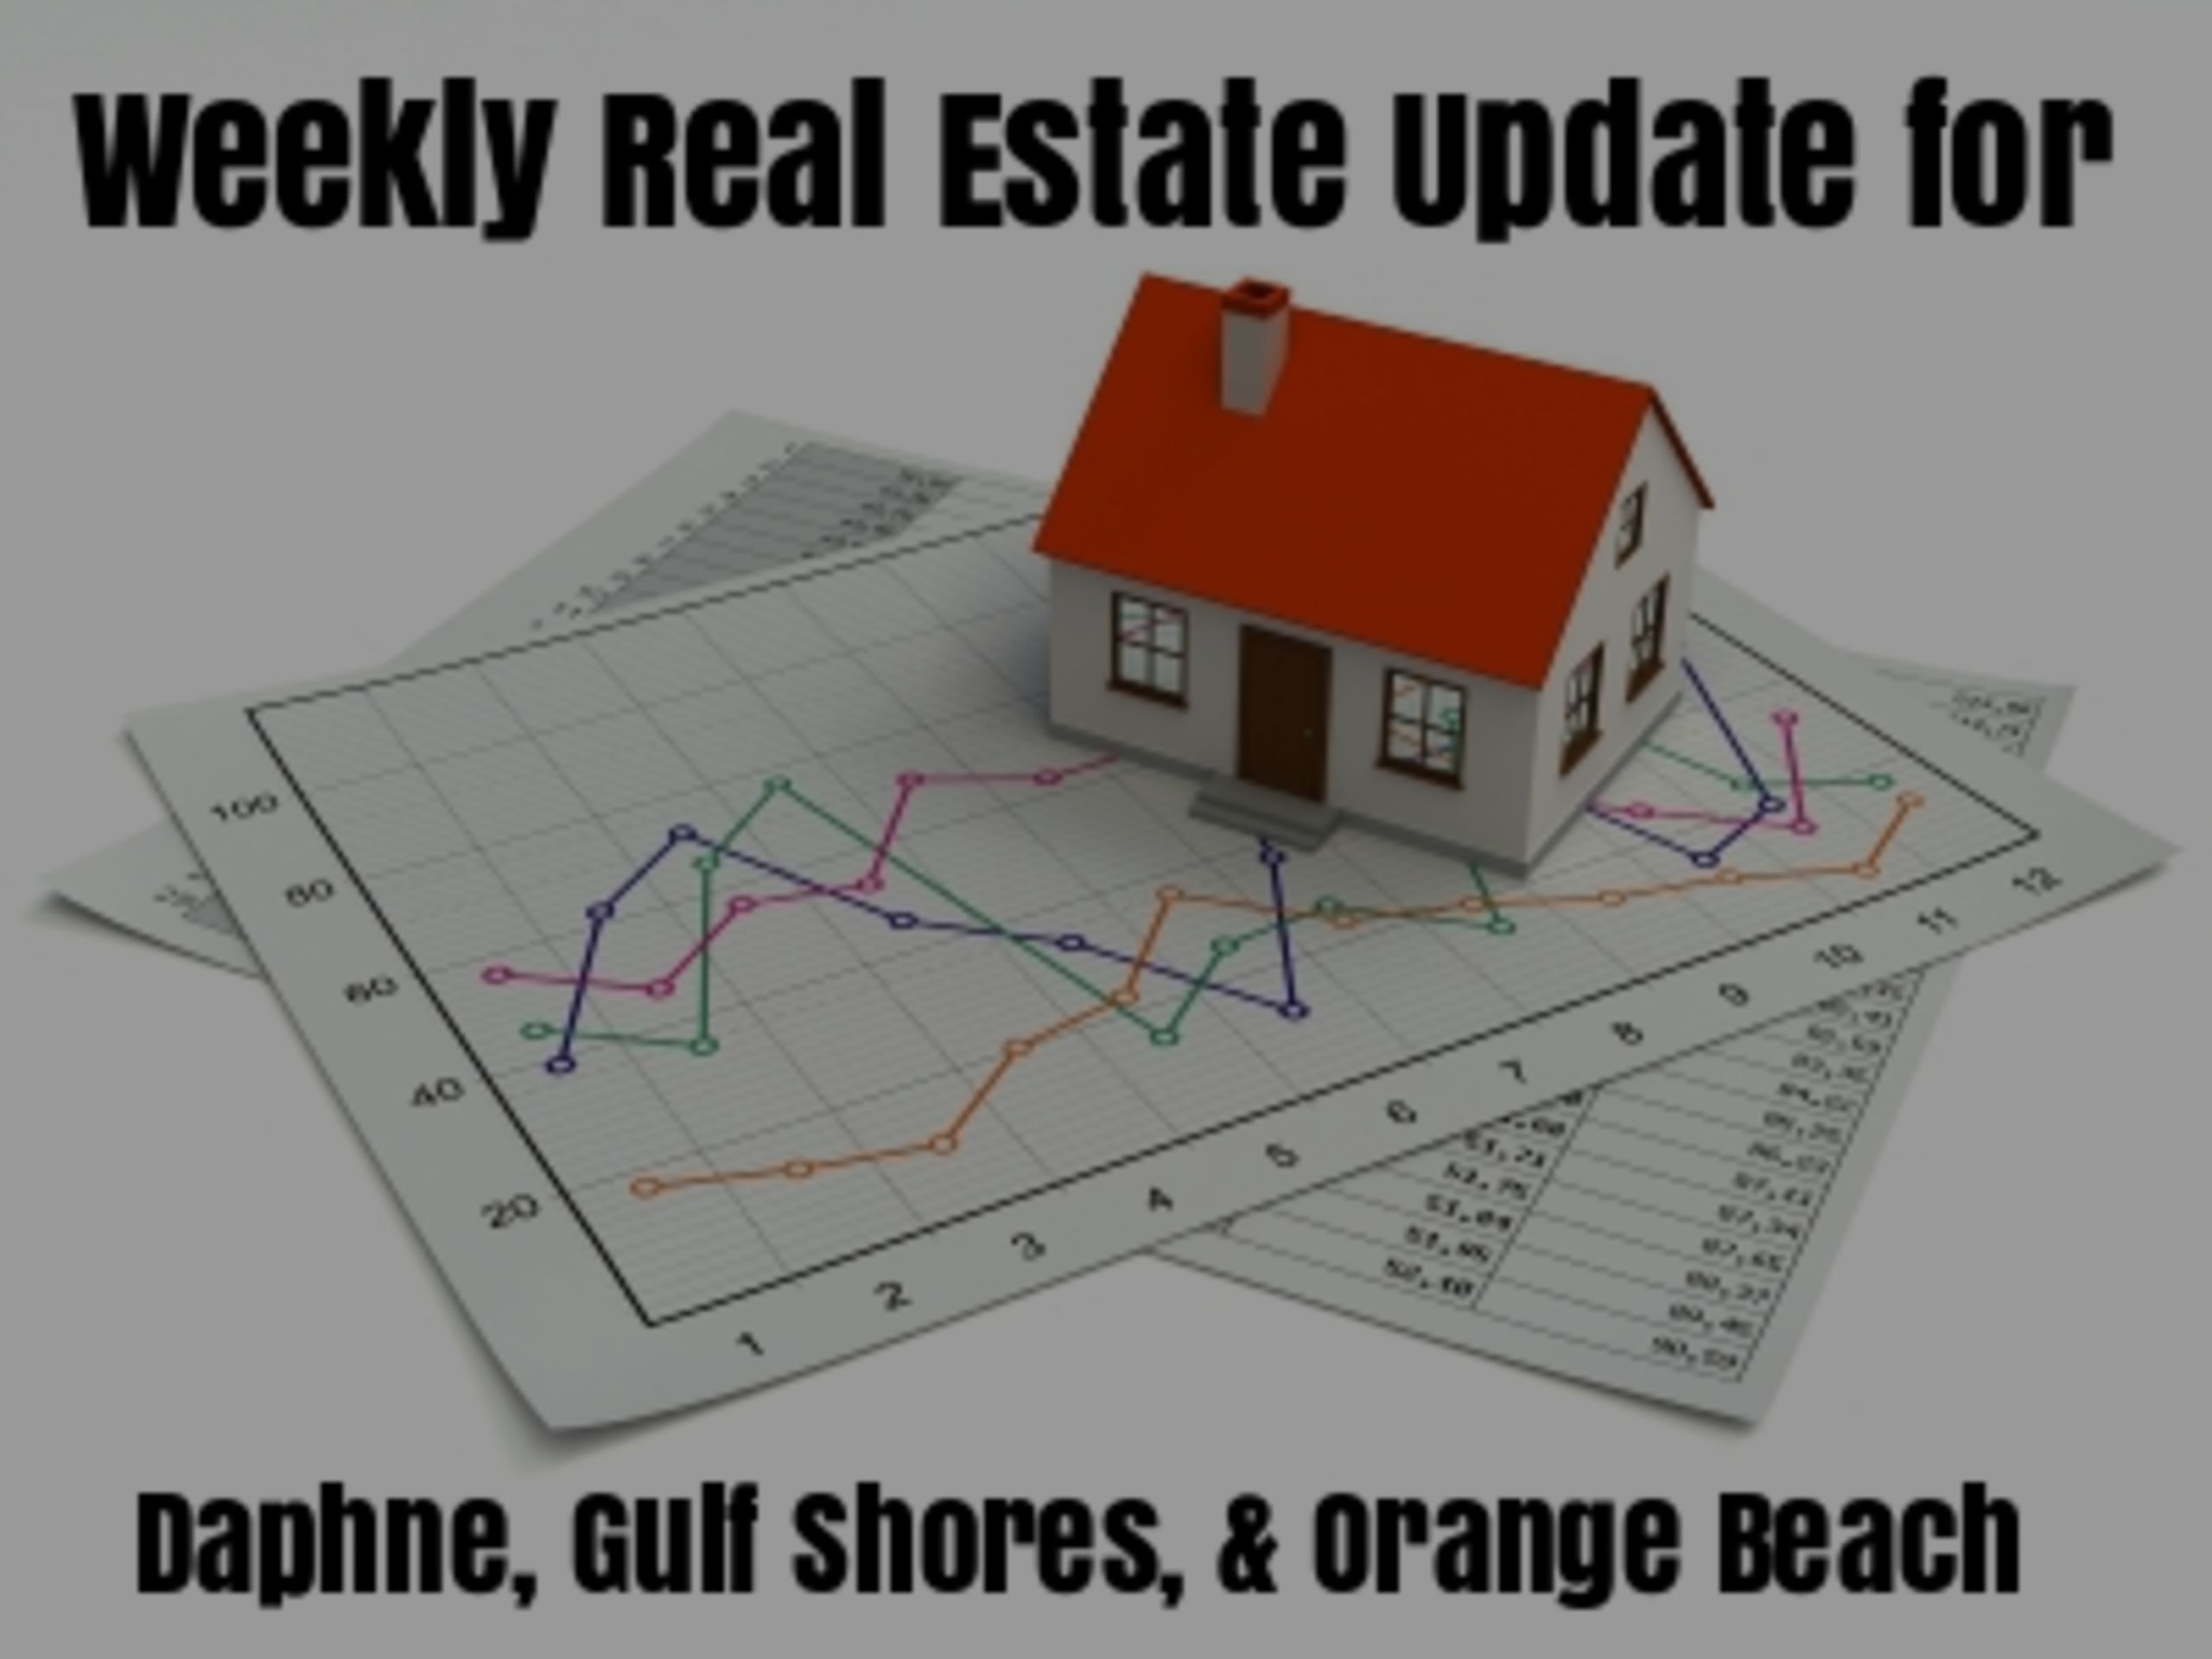 Weekly Real Estate Update – Daphne, Gulf Shores, and Orange Beach – 2/20/17